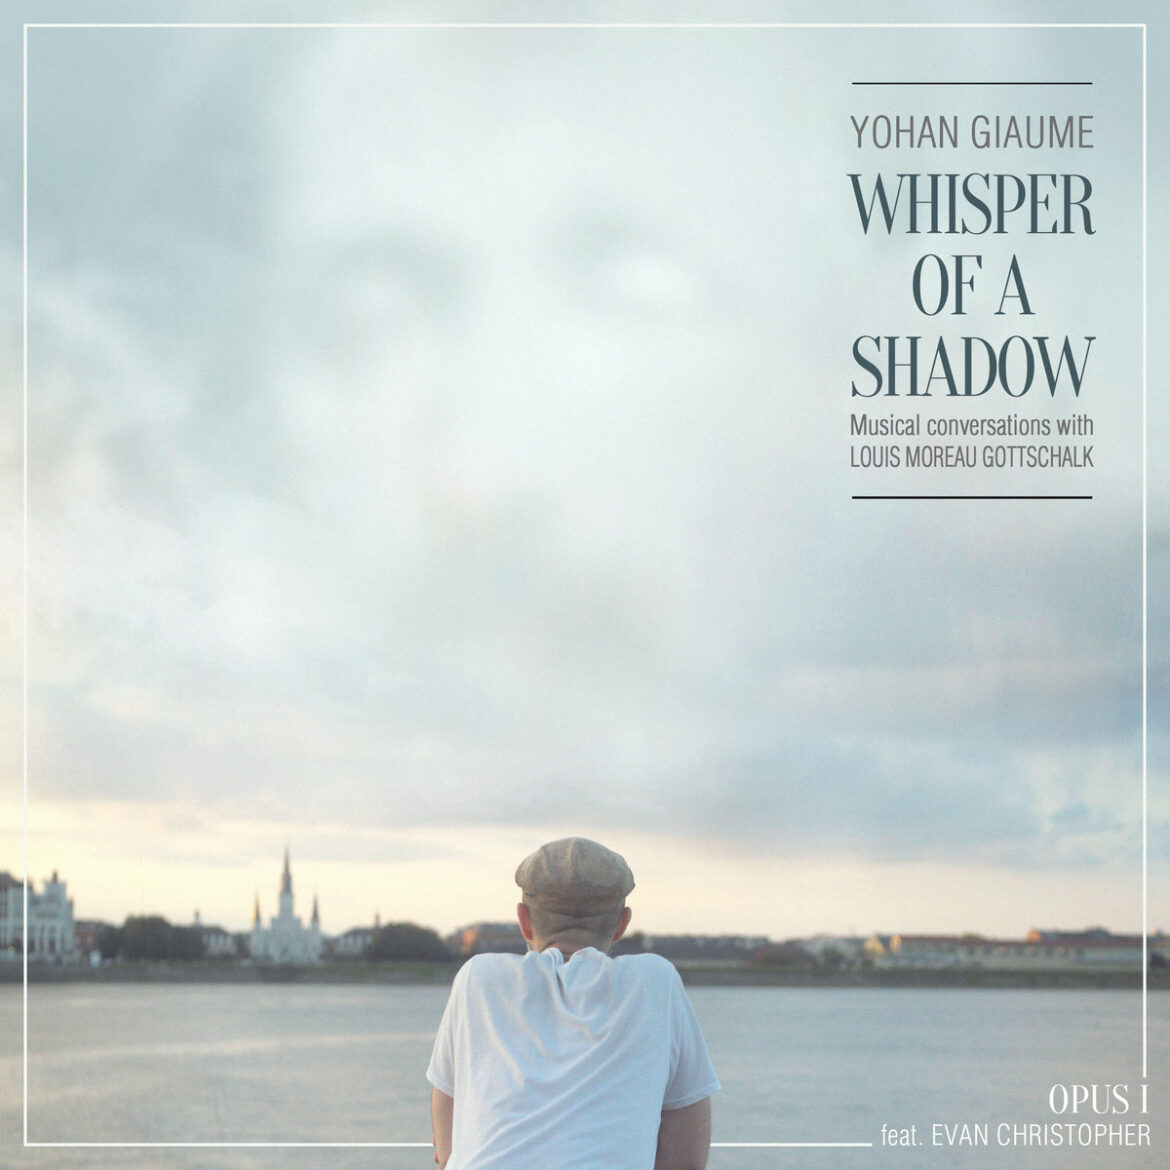 Yohan Giaume, Whisper of a Shadow, Opus 1 (Album Review)